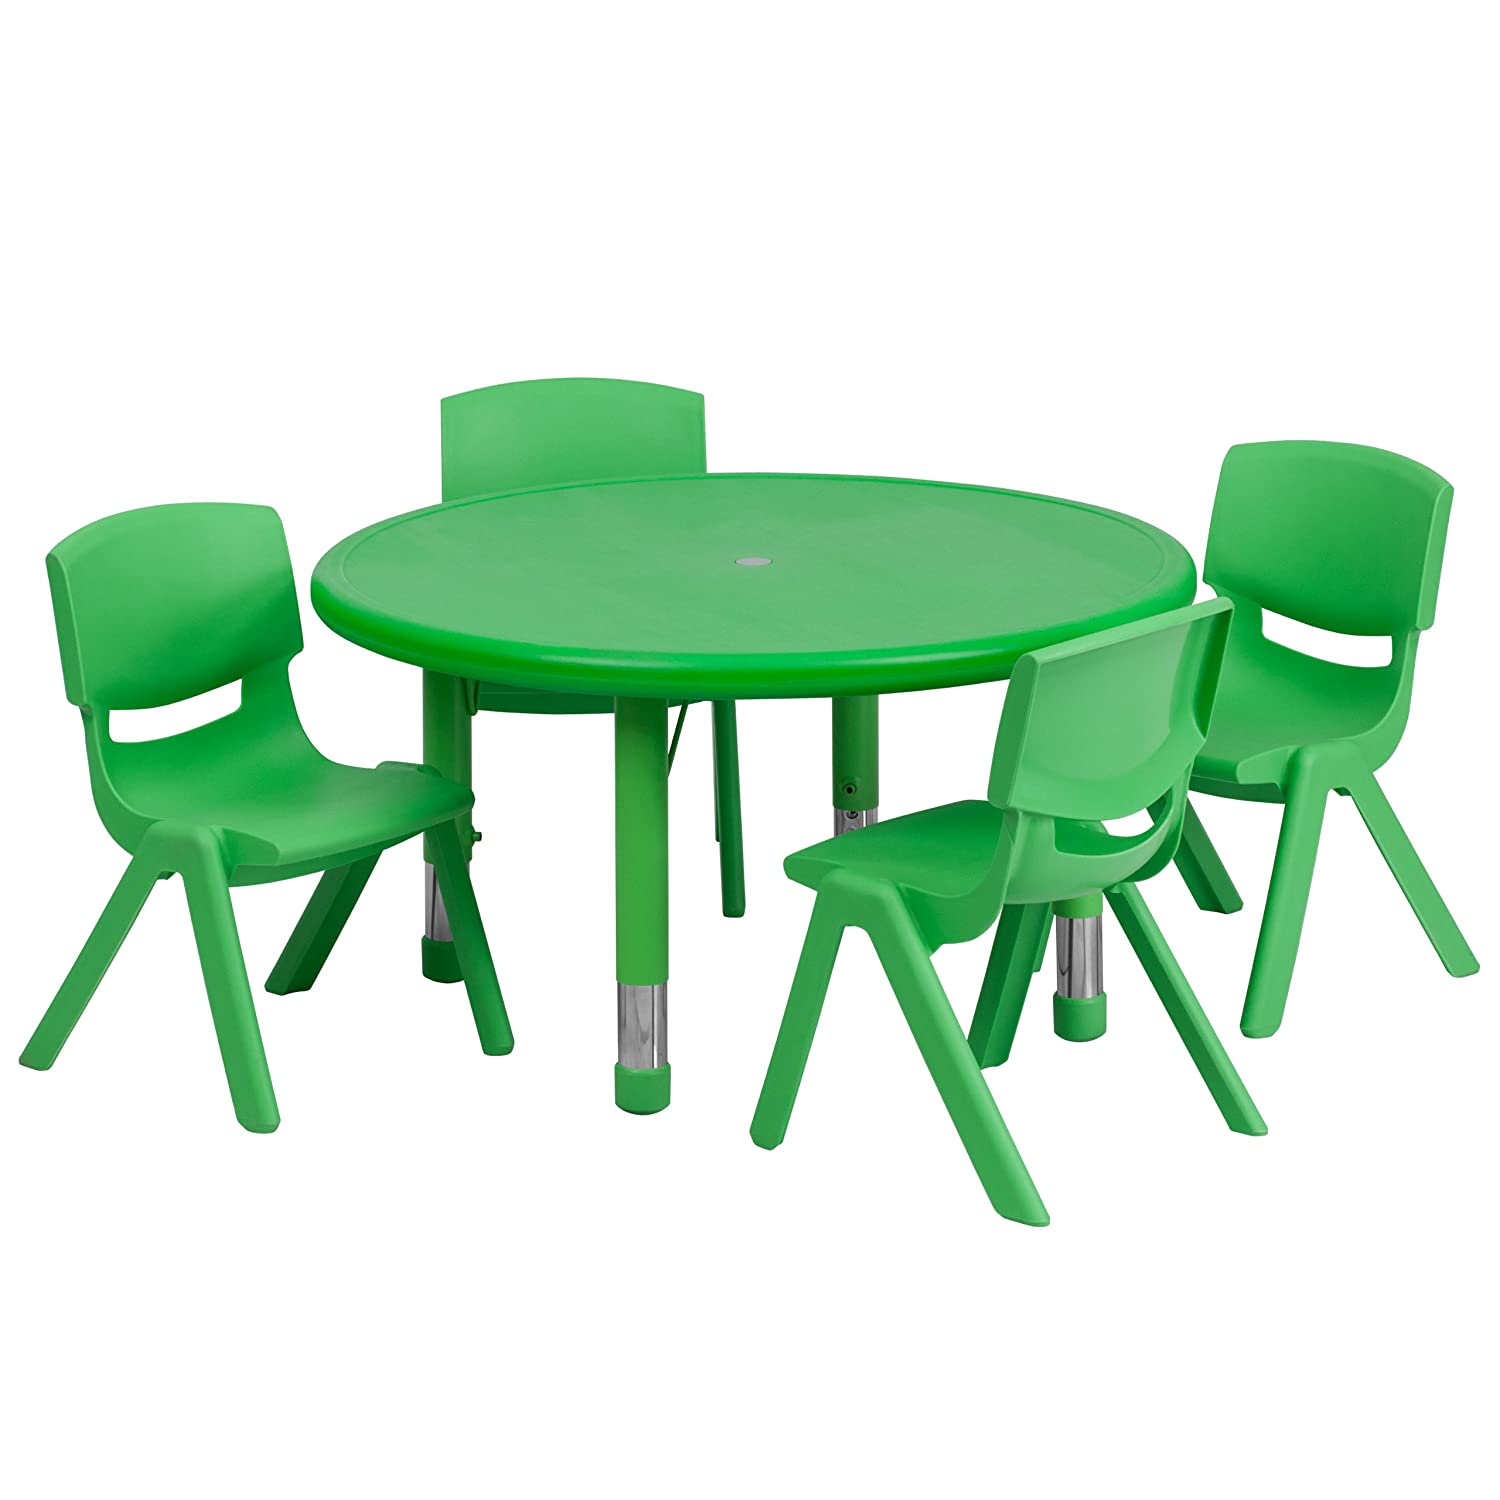 """Flash Furniture 33"""" Round Adjustable Green Plastic Activity Table Set with 4 School Stack Chairs"""